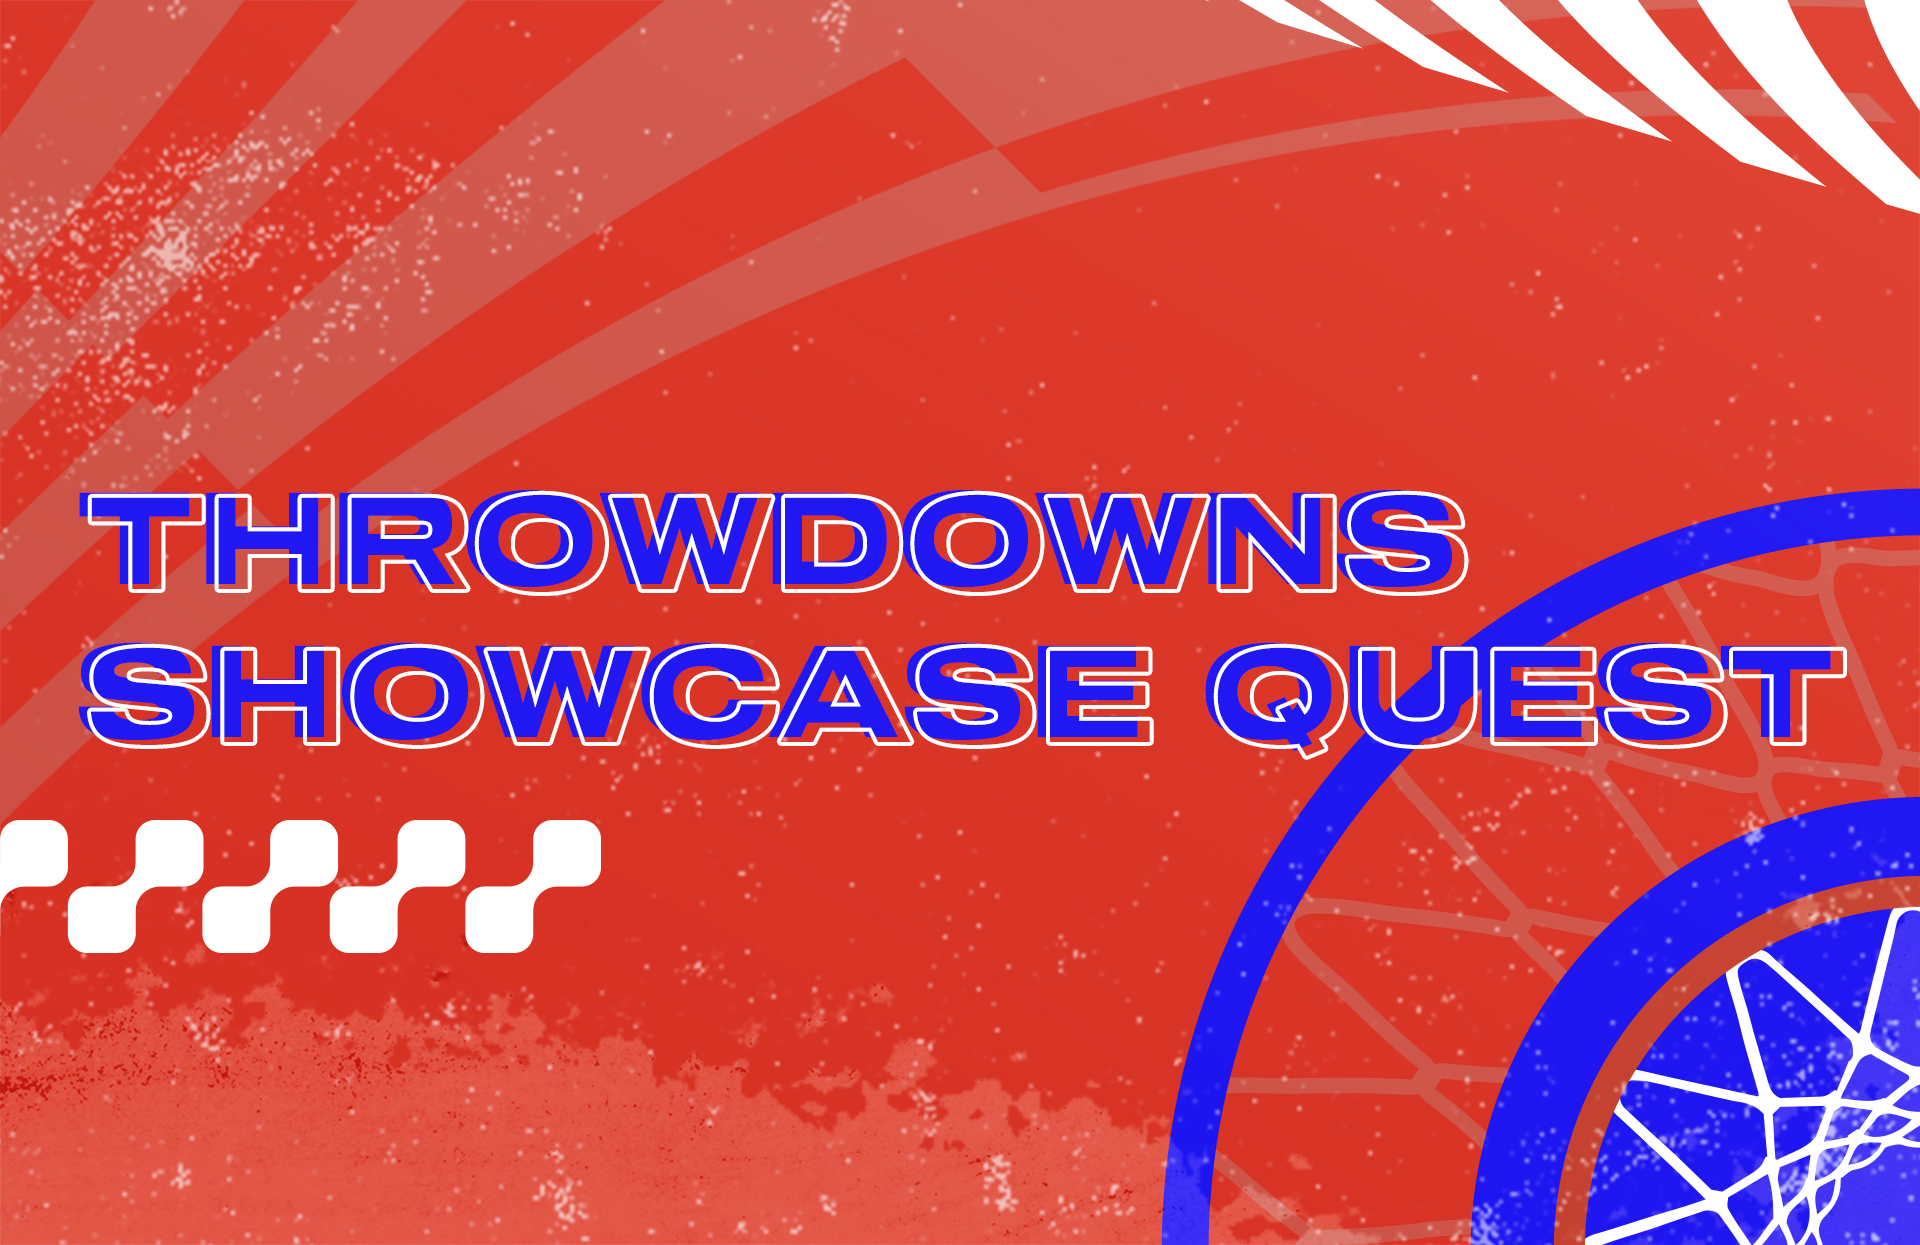 We have a new Showcase Quest featuring a never-to-be-sold-in-packs rare Moment from one of the league's stars.